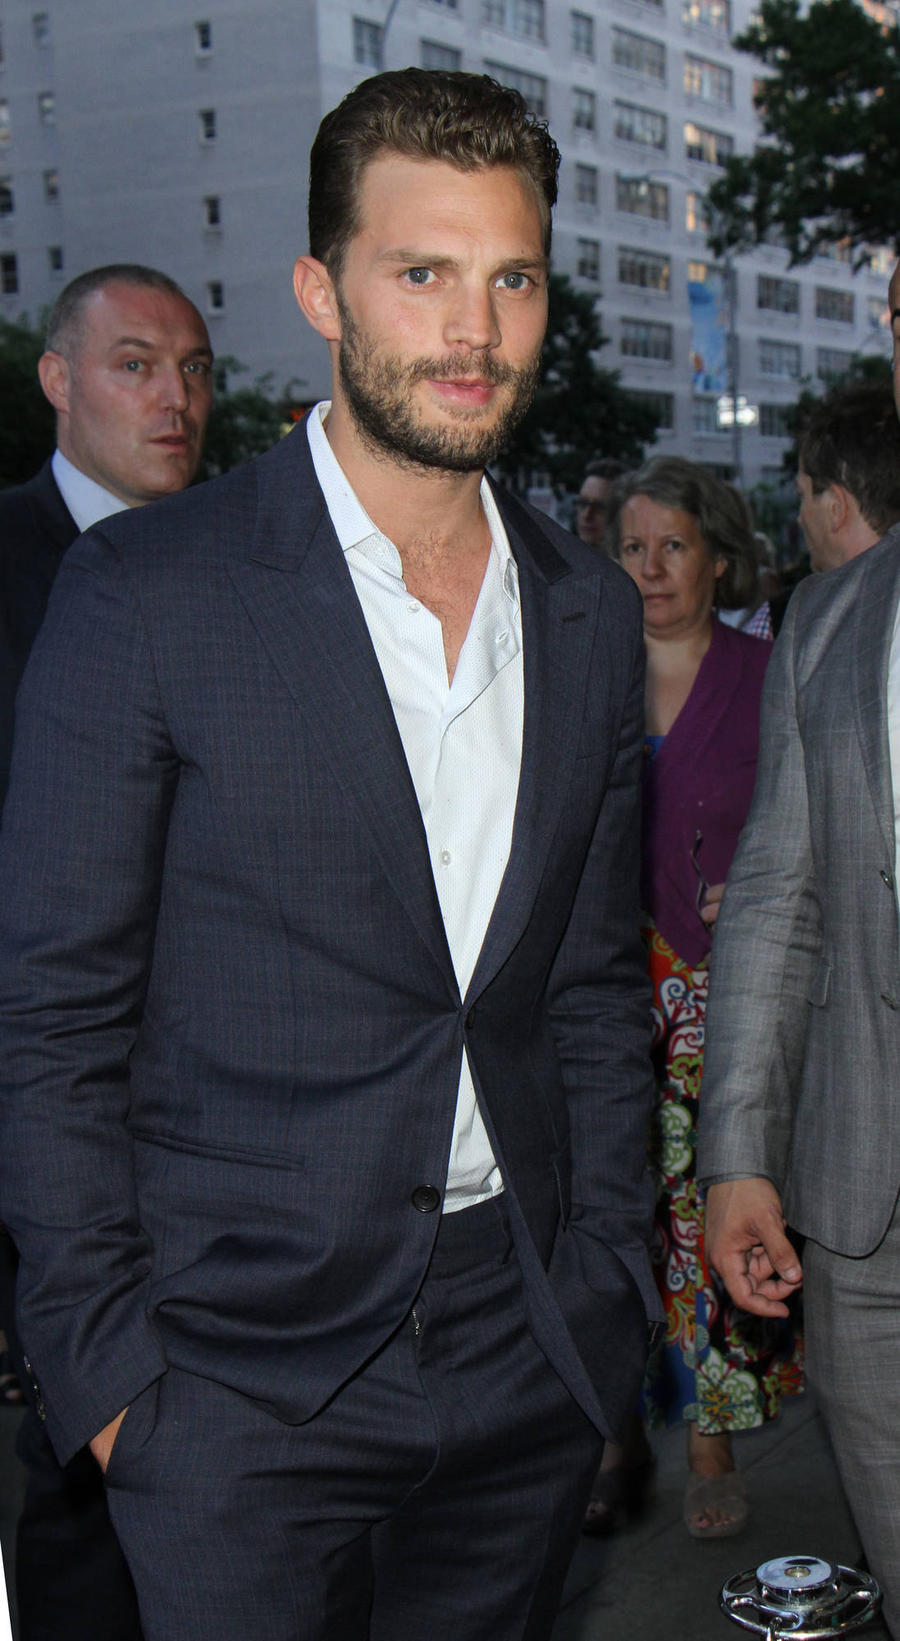 Jamie Dornan Angry Irish Hero Was Not Recognised For Bravery